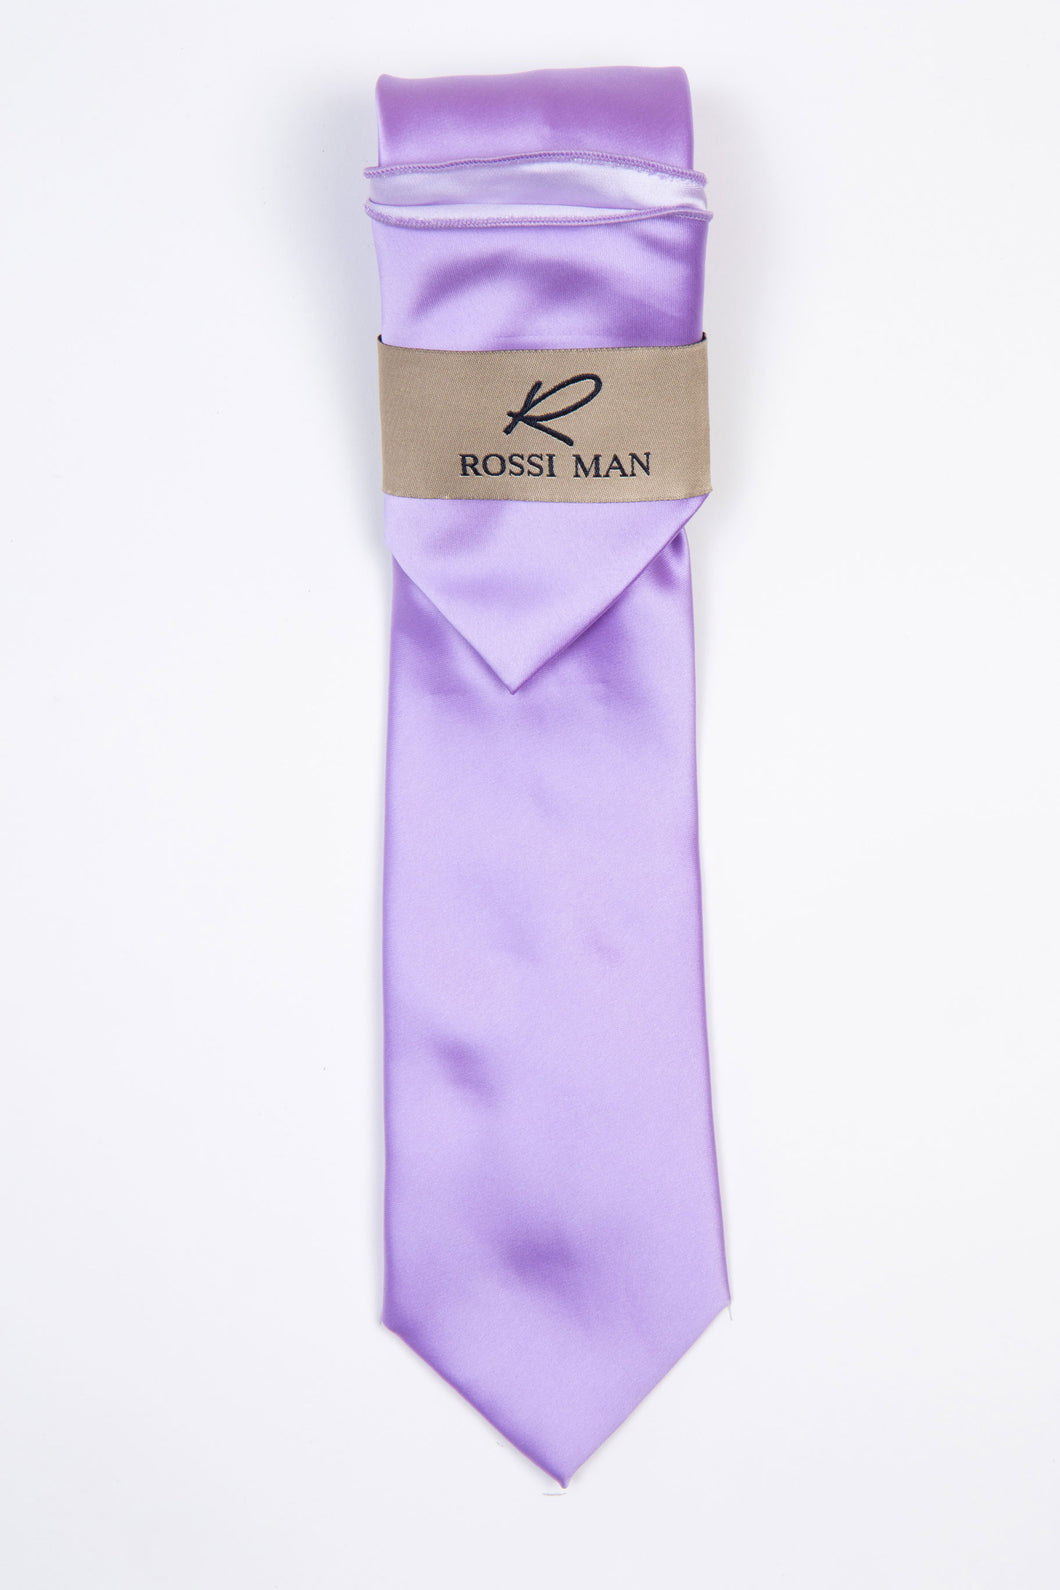 Rossi Man Tie and Pocket Round - RMR665-13